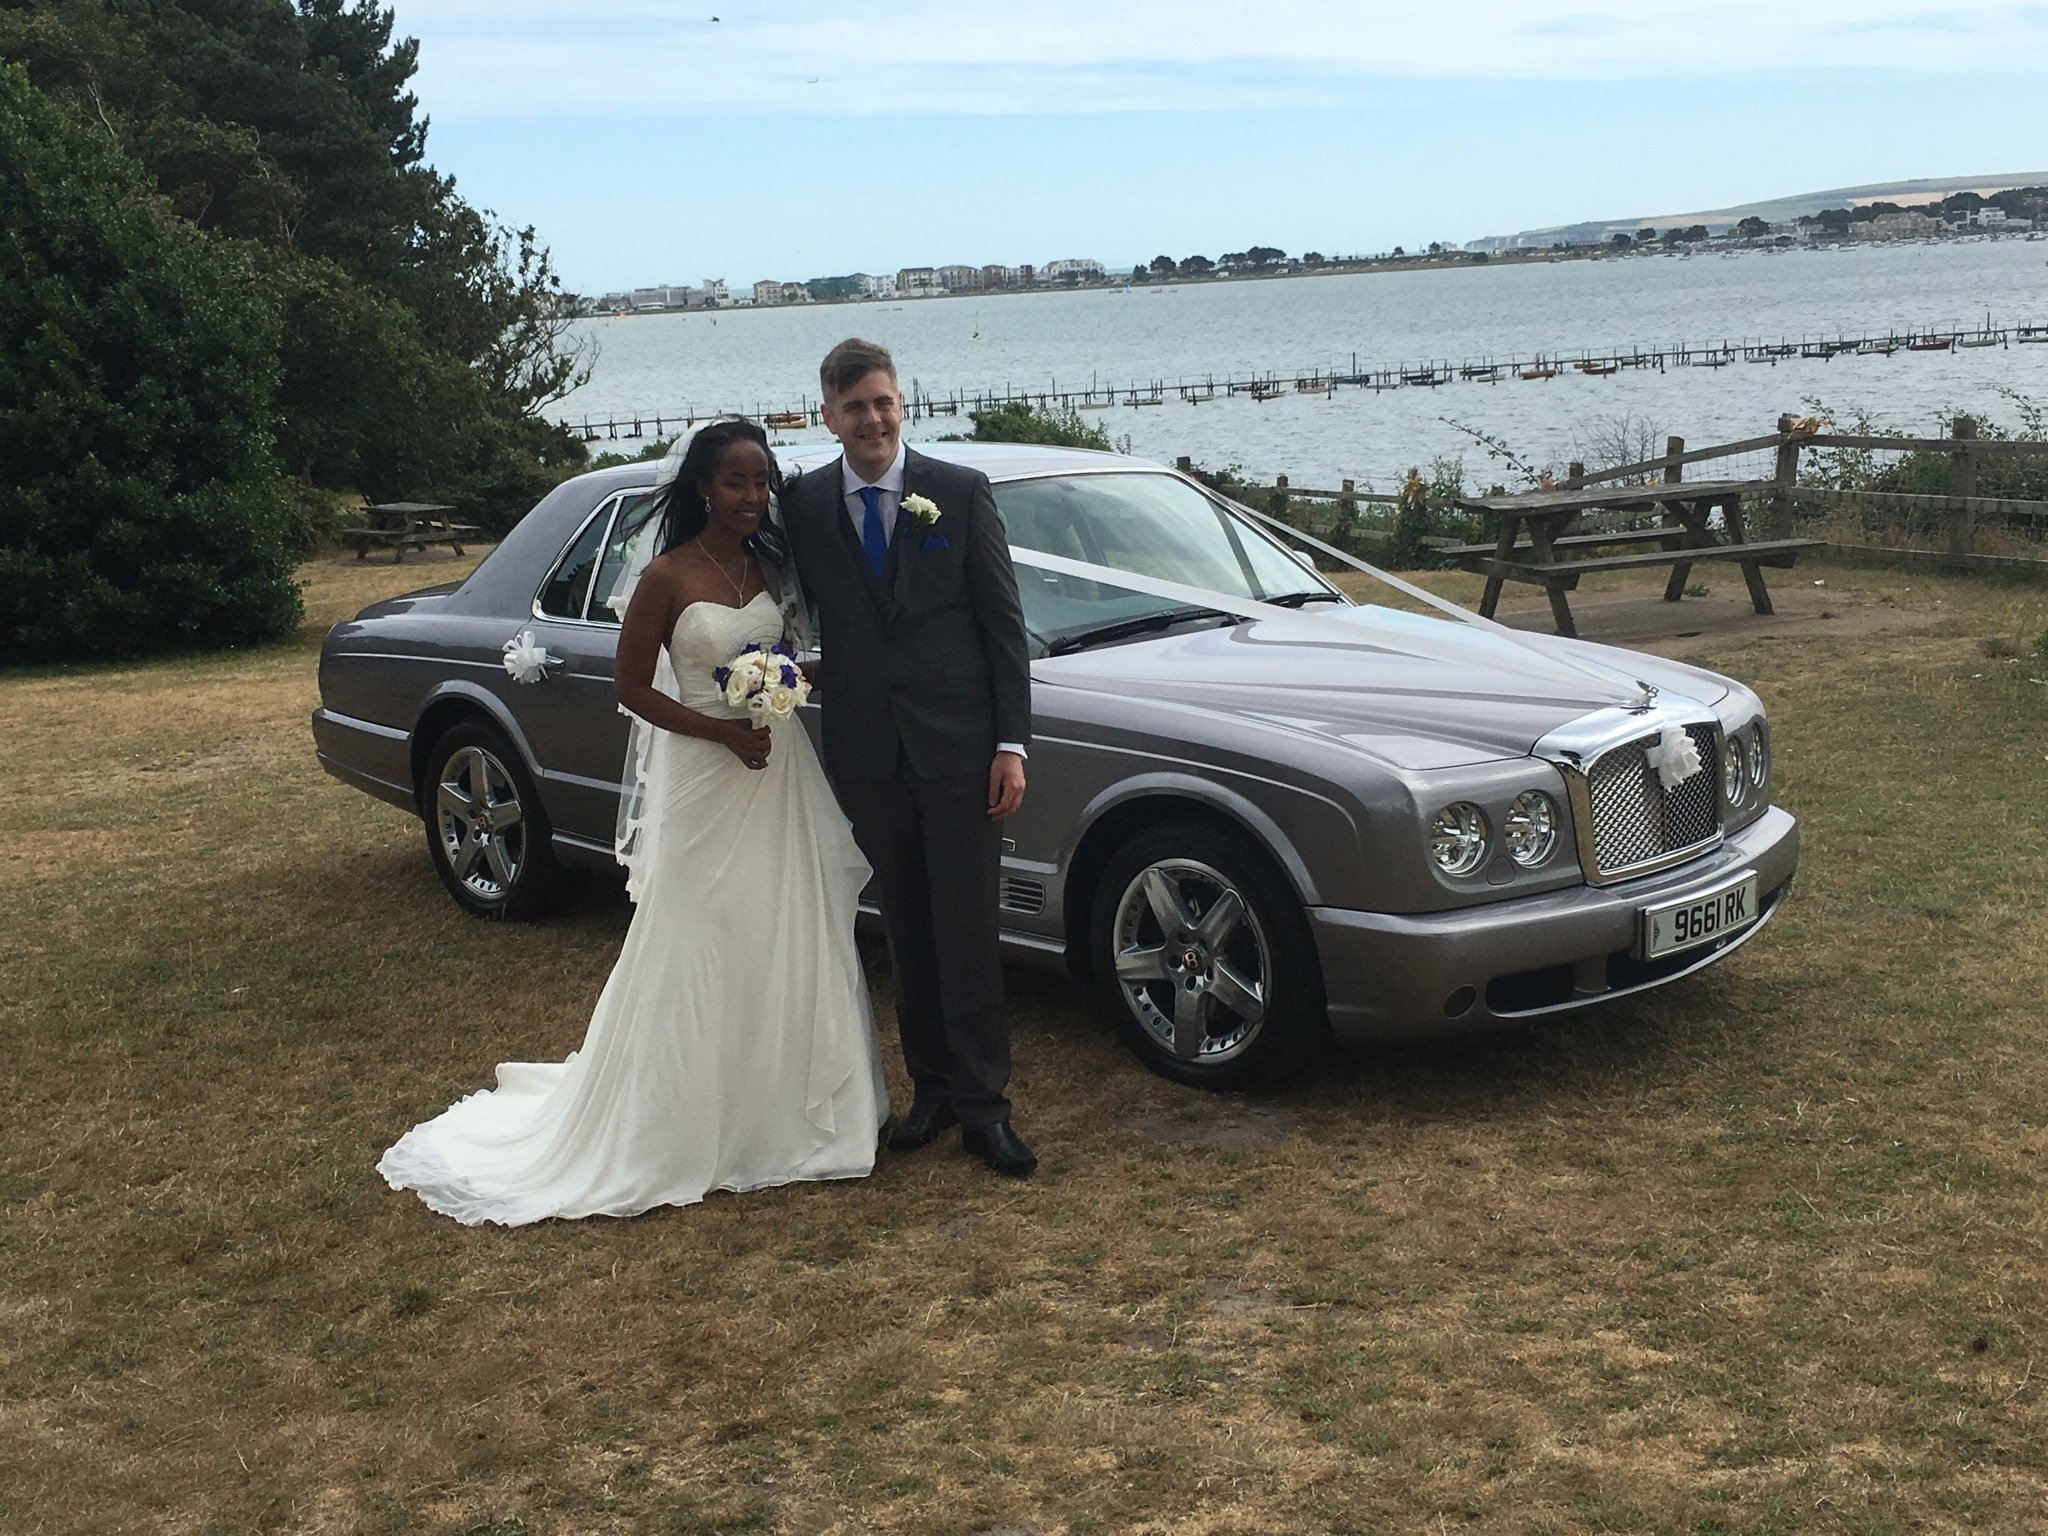 Couple posing with their rented wedding car